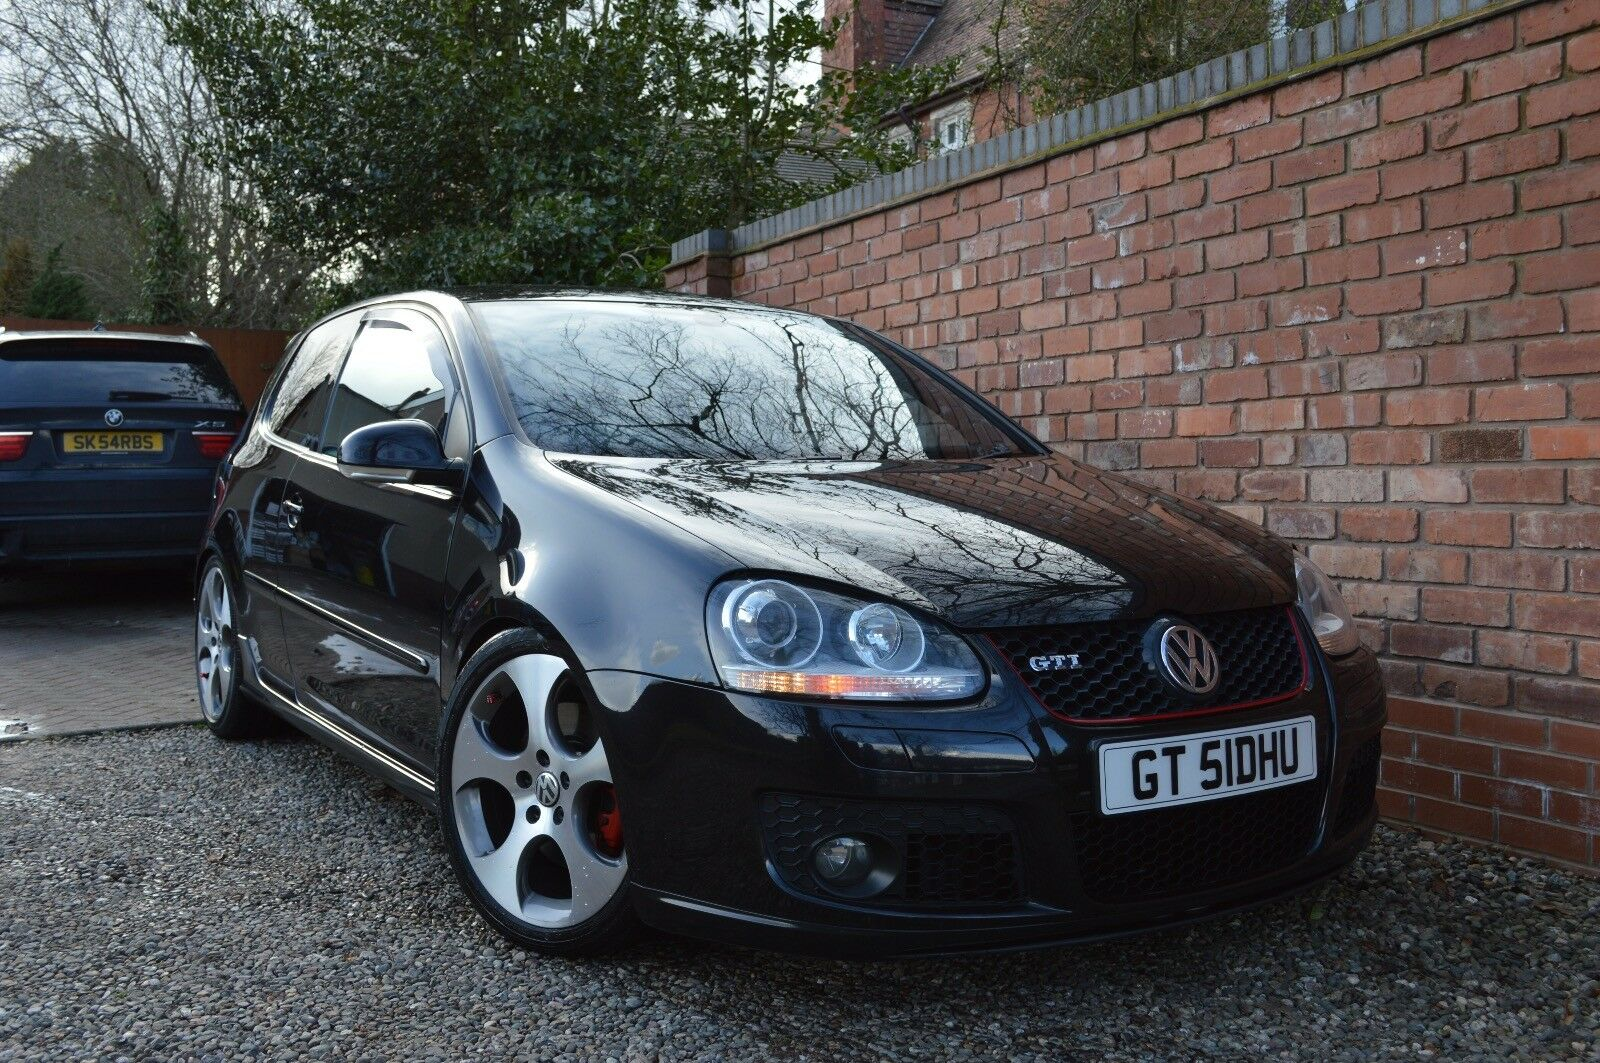 vw golf gti mk5 3dr 55 fully loaded rtech stage 1 manual rh picclick co uk mk5 gti service manual golf mk5 gti service manual